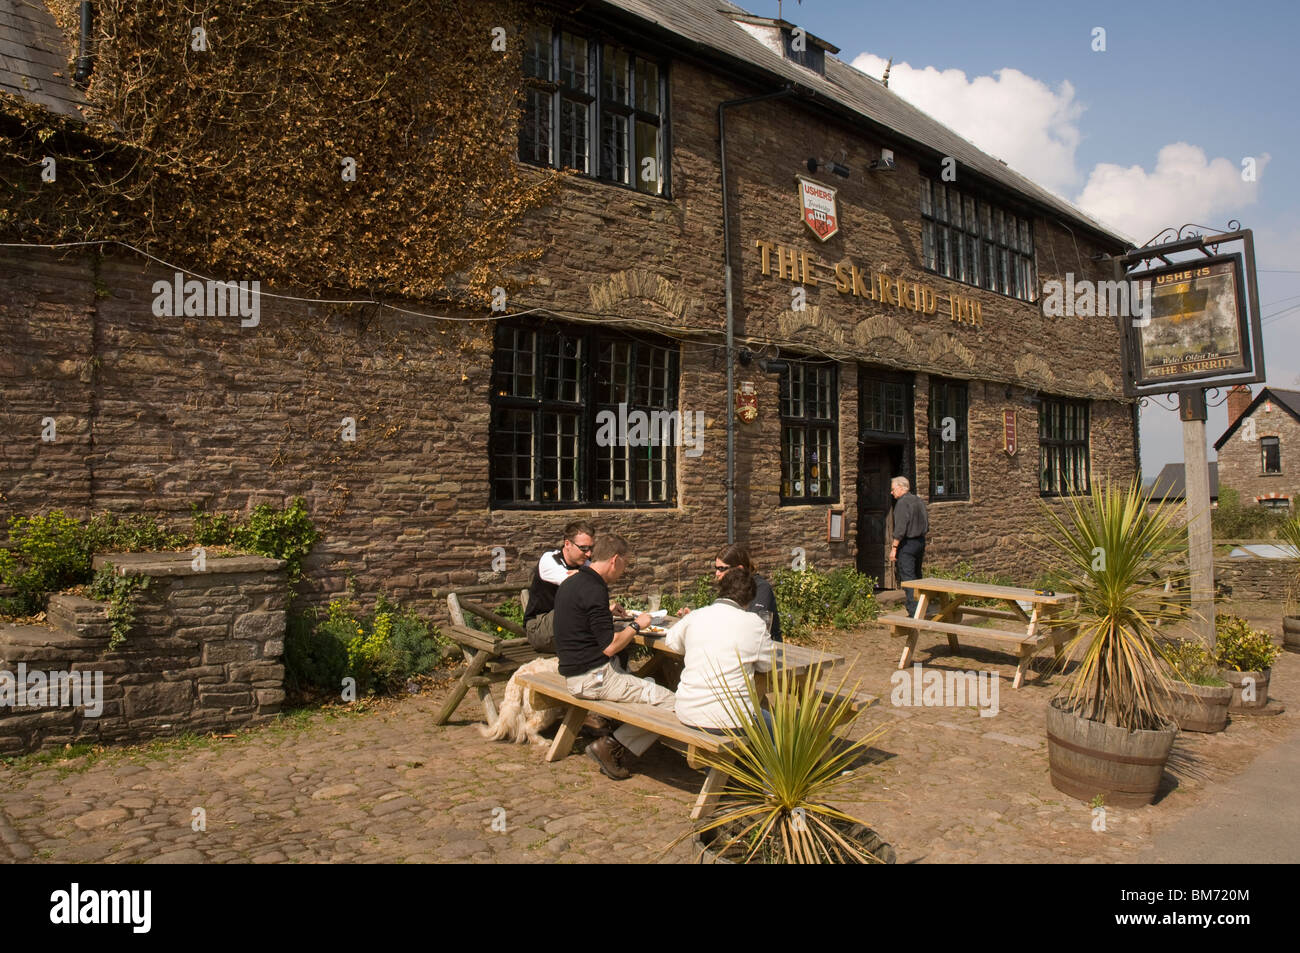 Skirrid Mountain Inn, älteste Pub in Wales, schwarze Berge, Wales, UK, Europa Stockbild